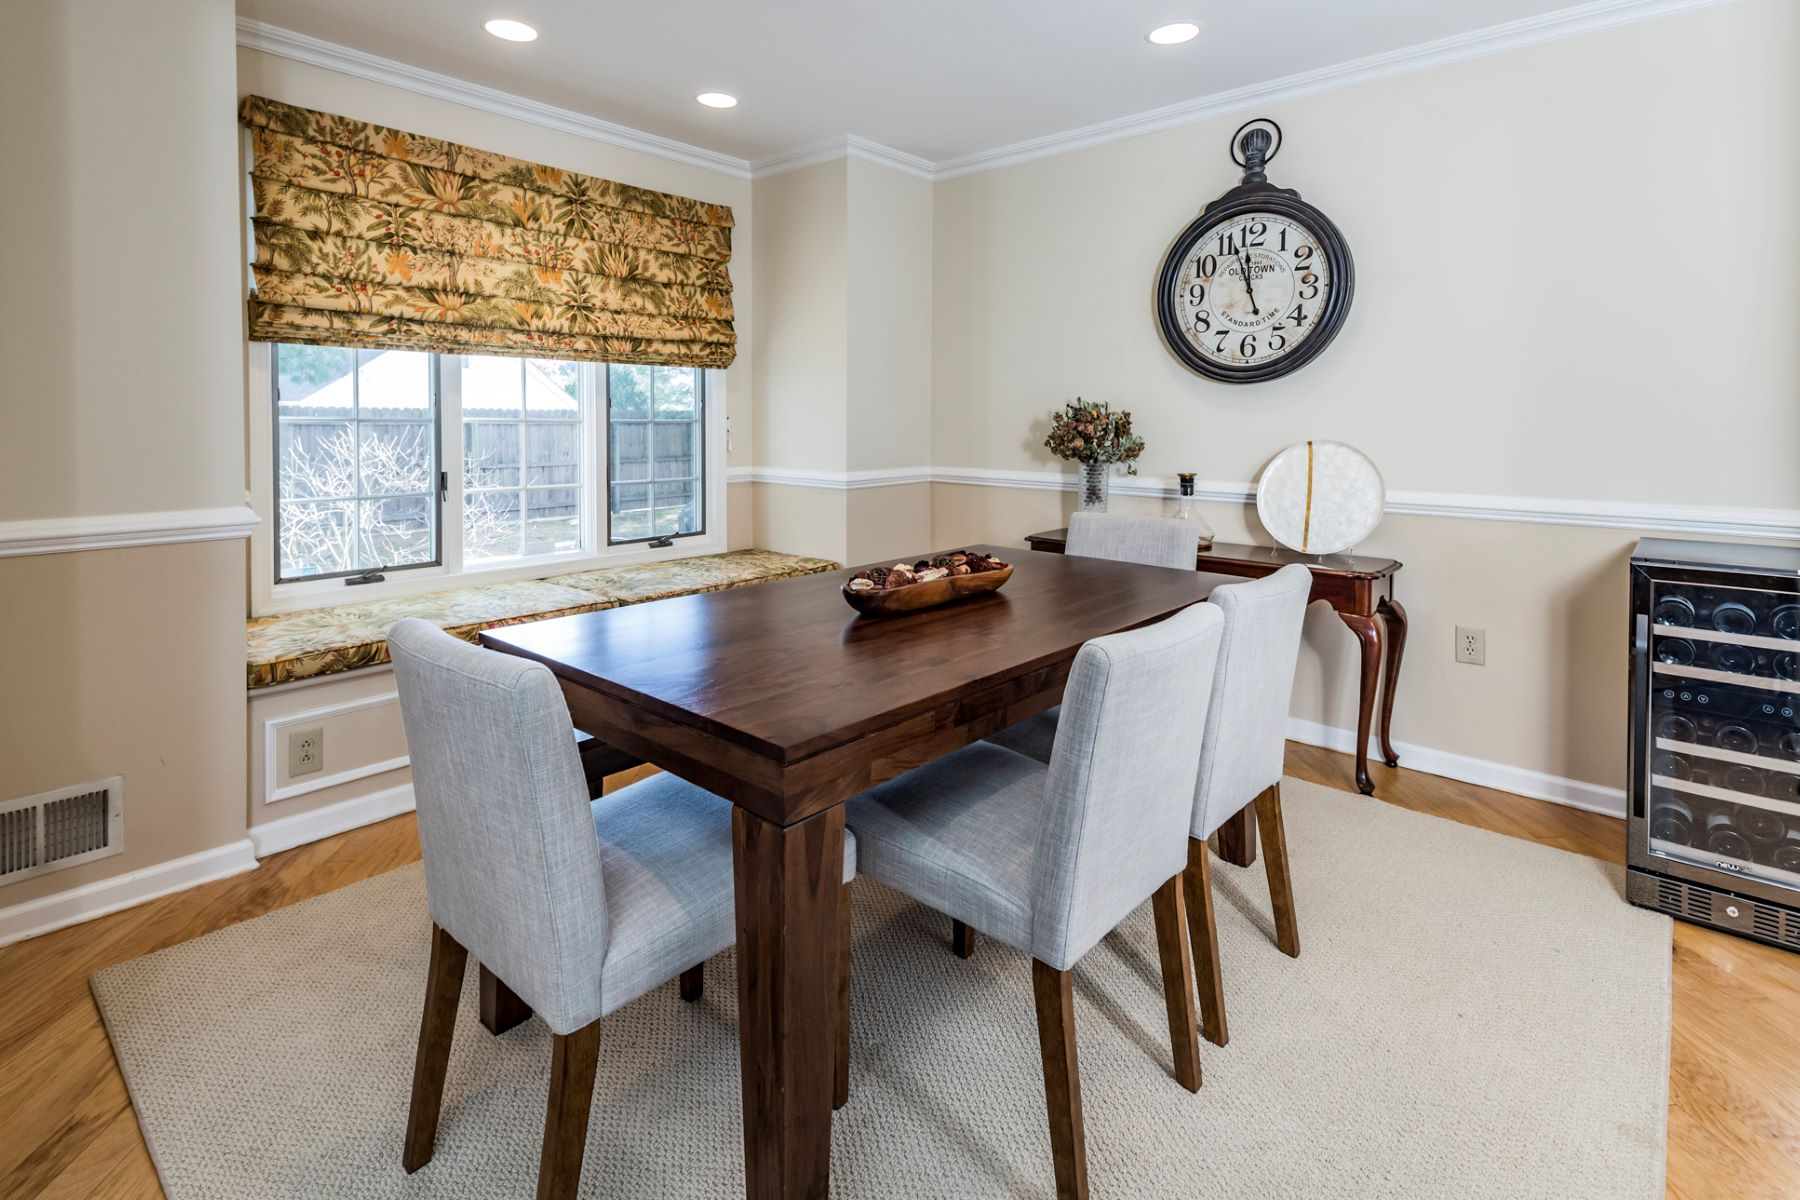 Additional photo for property listing at Designer Style In An Ideal Location 21 Railroad Place, Pennington, New Jersey 08534 United States